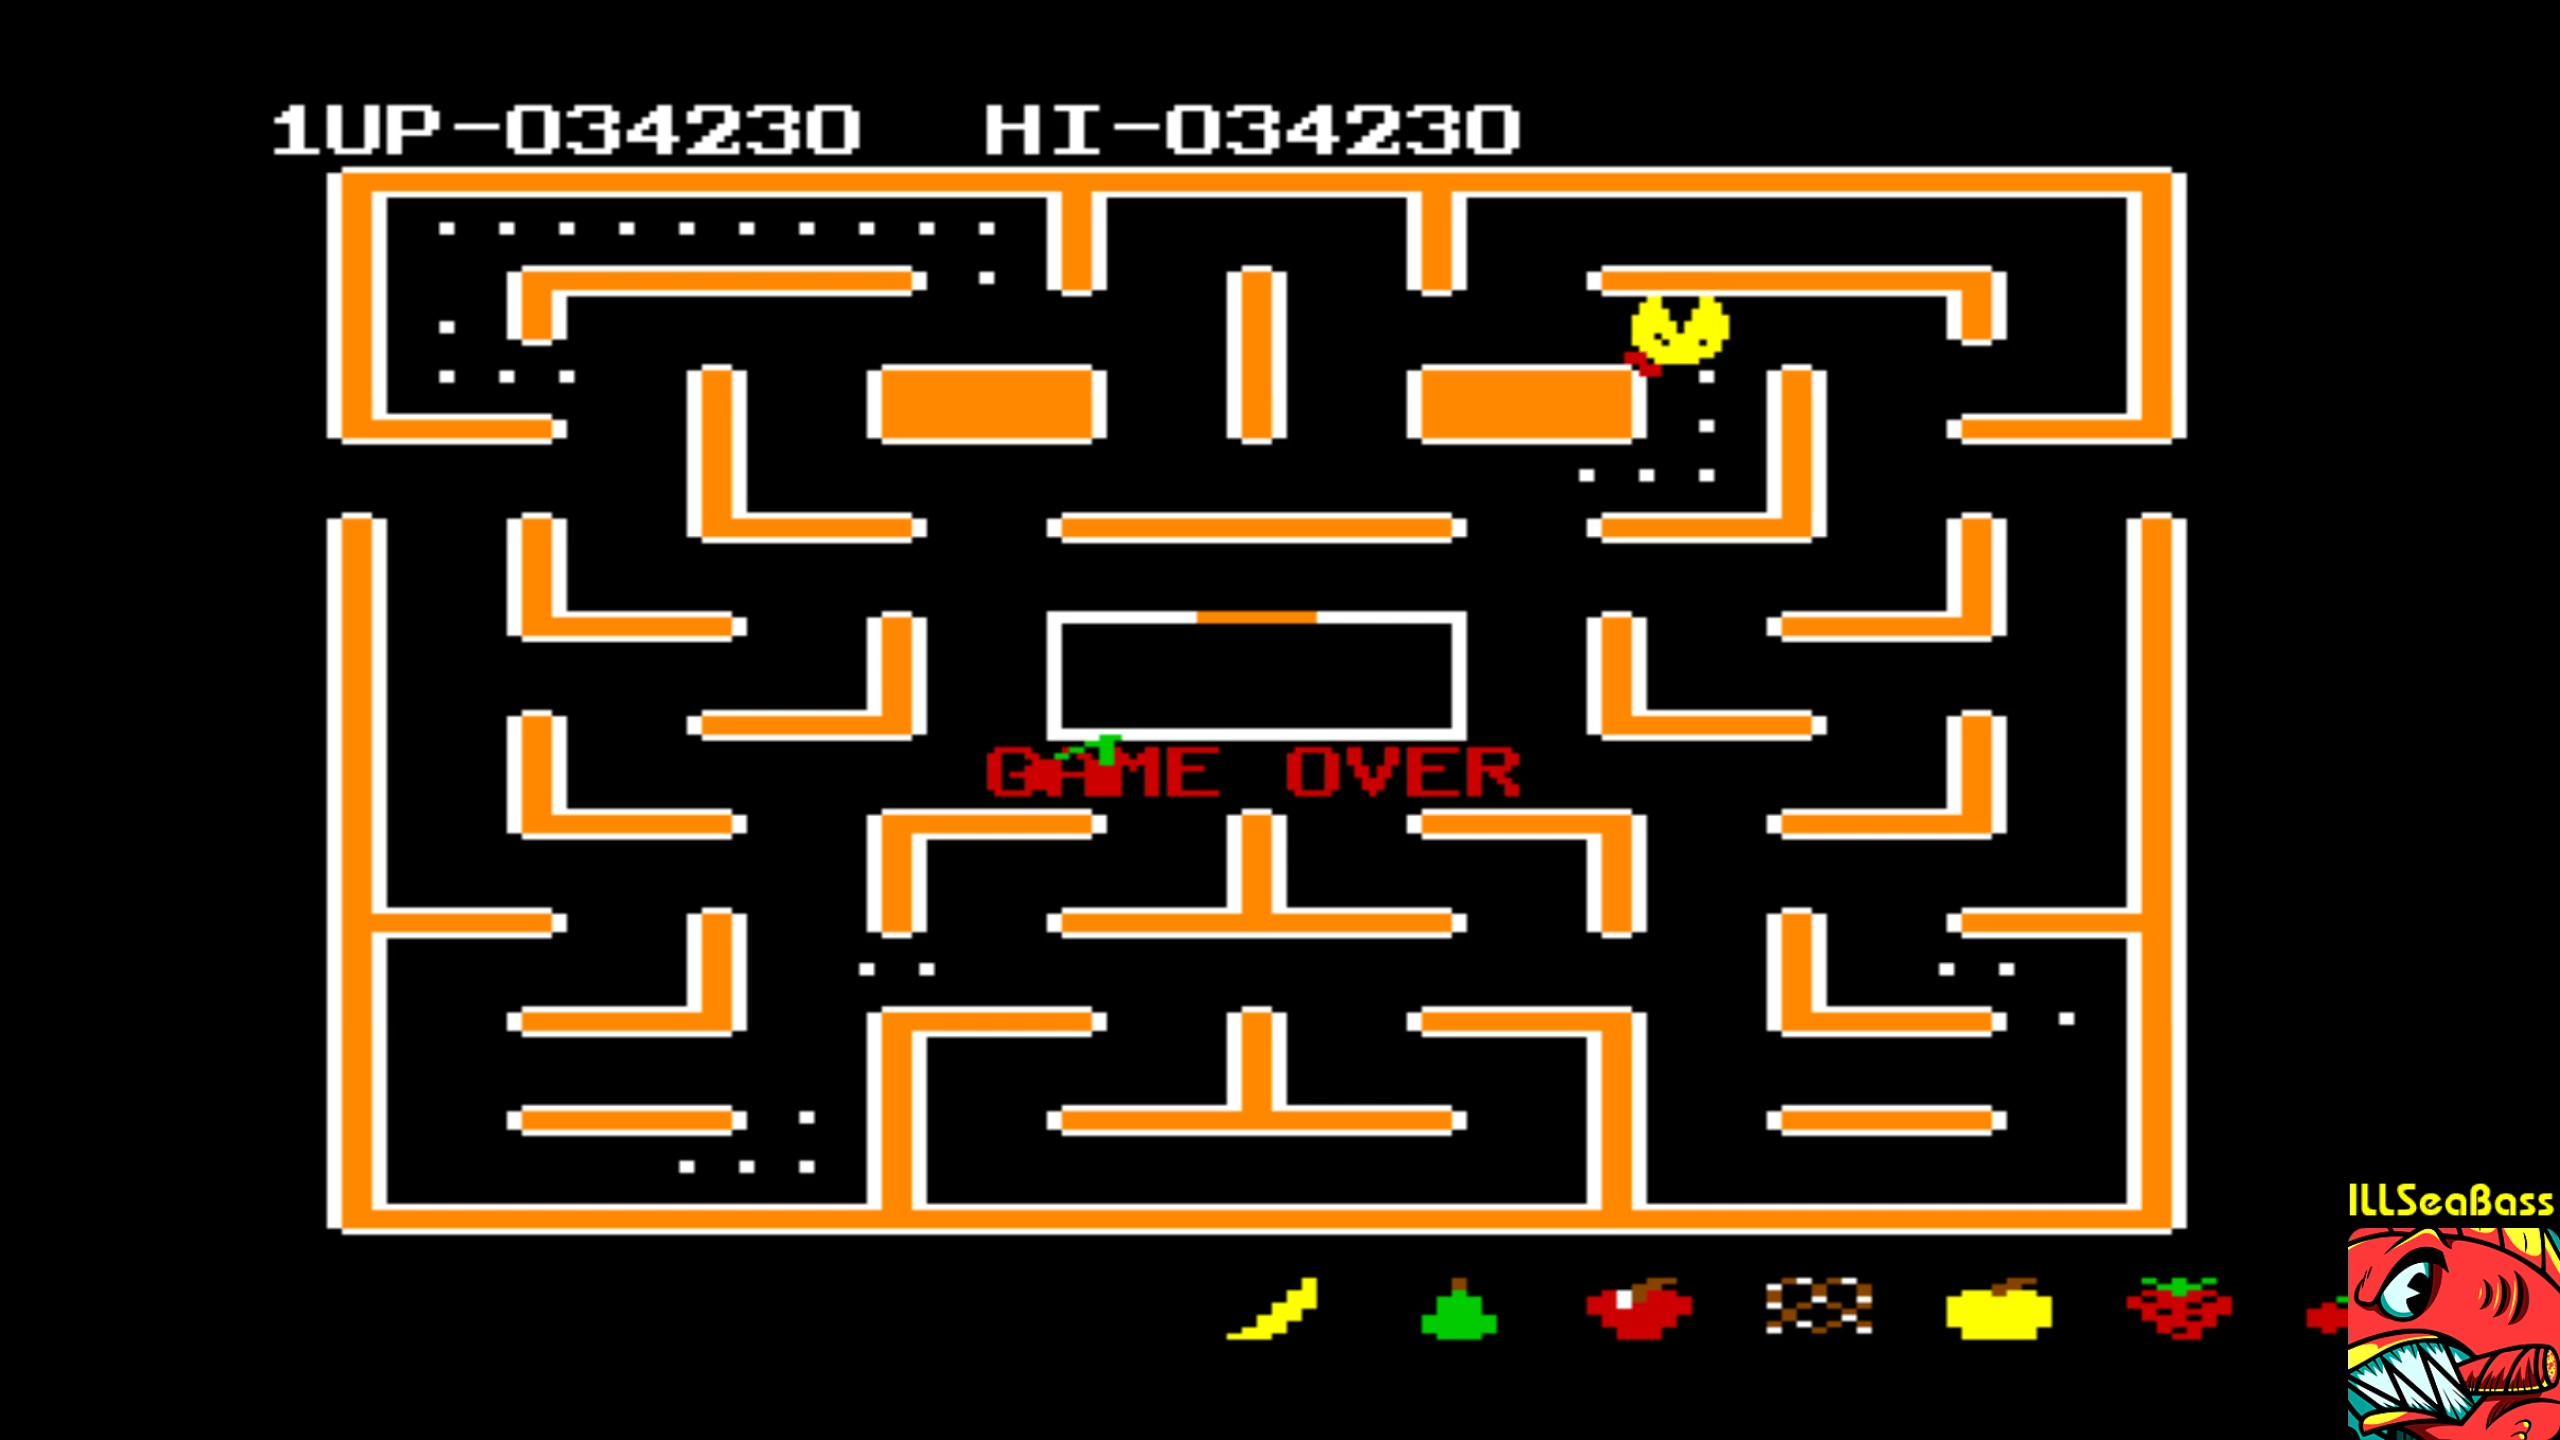 ILLSeaBass: Ms. Pac-Man [Apple Start] (Commodore 64 Emulated) 34,230 points on 2018-02-24 10:59:11